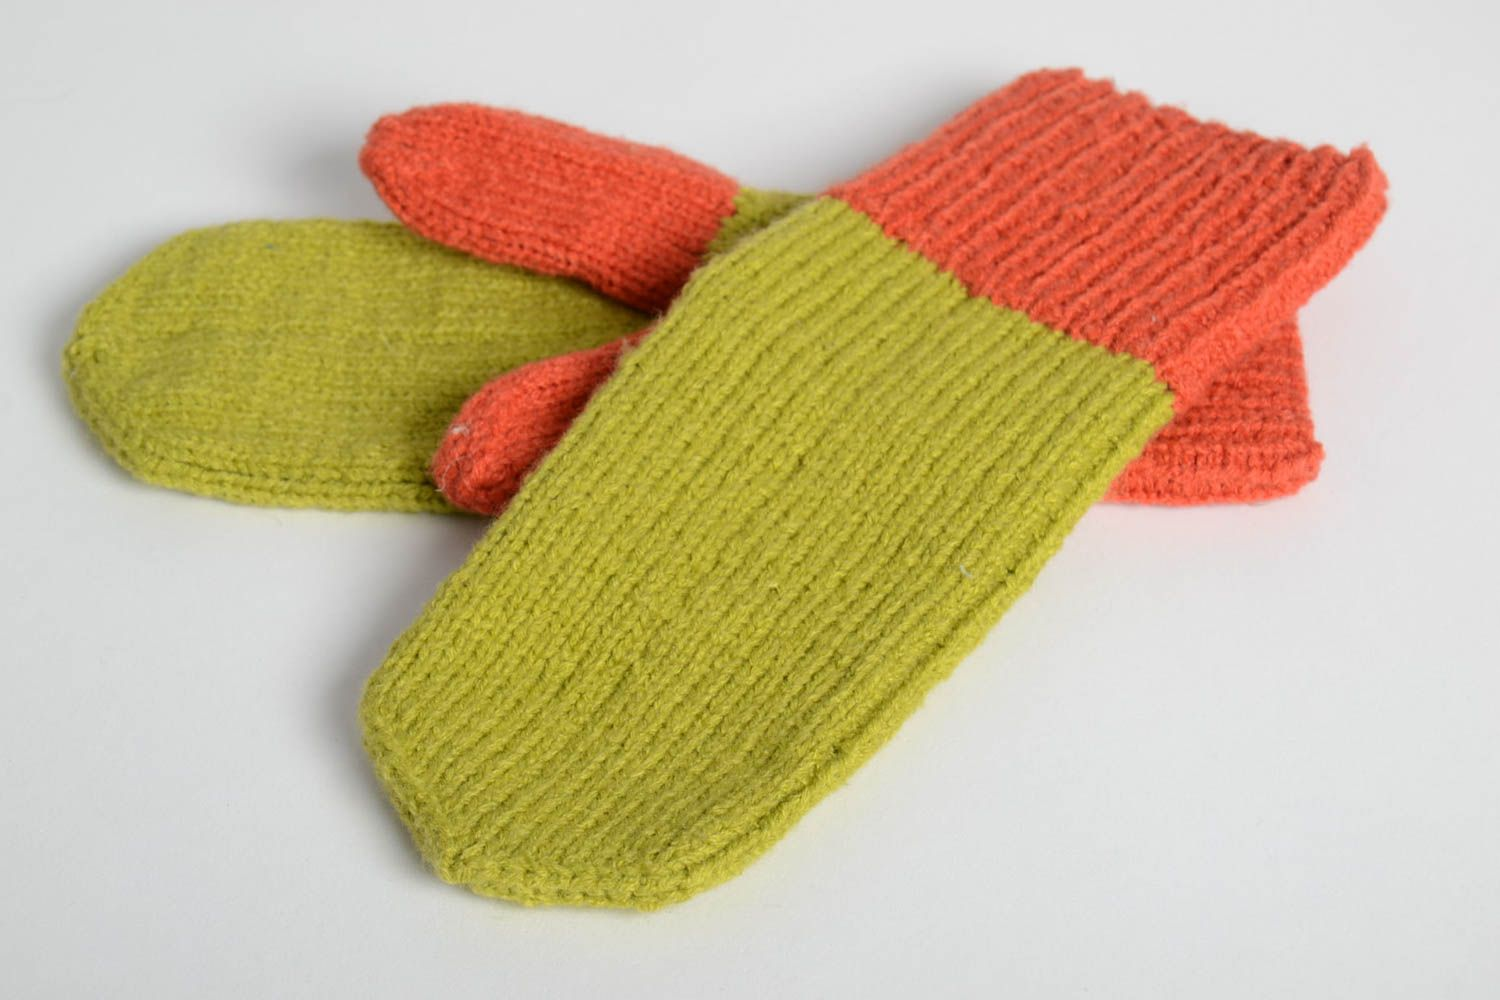 Handmade bright beautiful mittens designer knitted mittens winter clothes photo 5